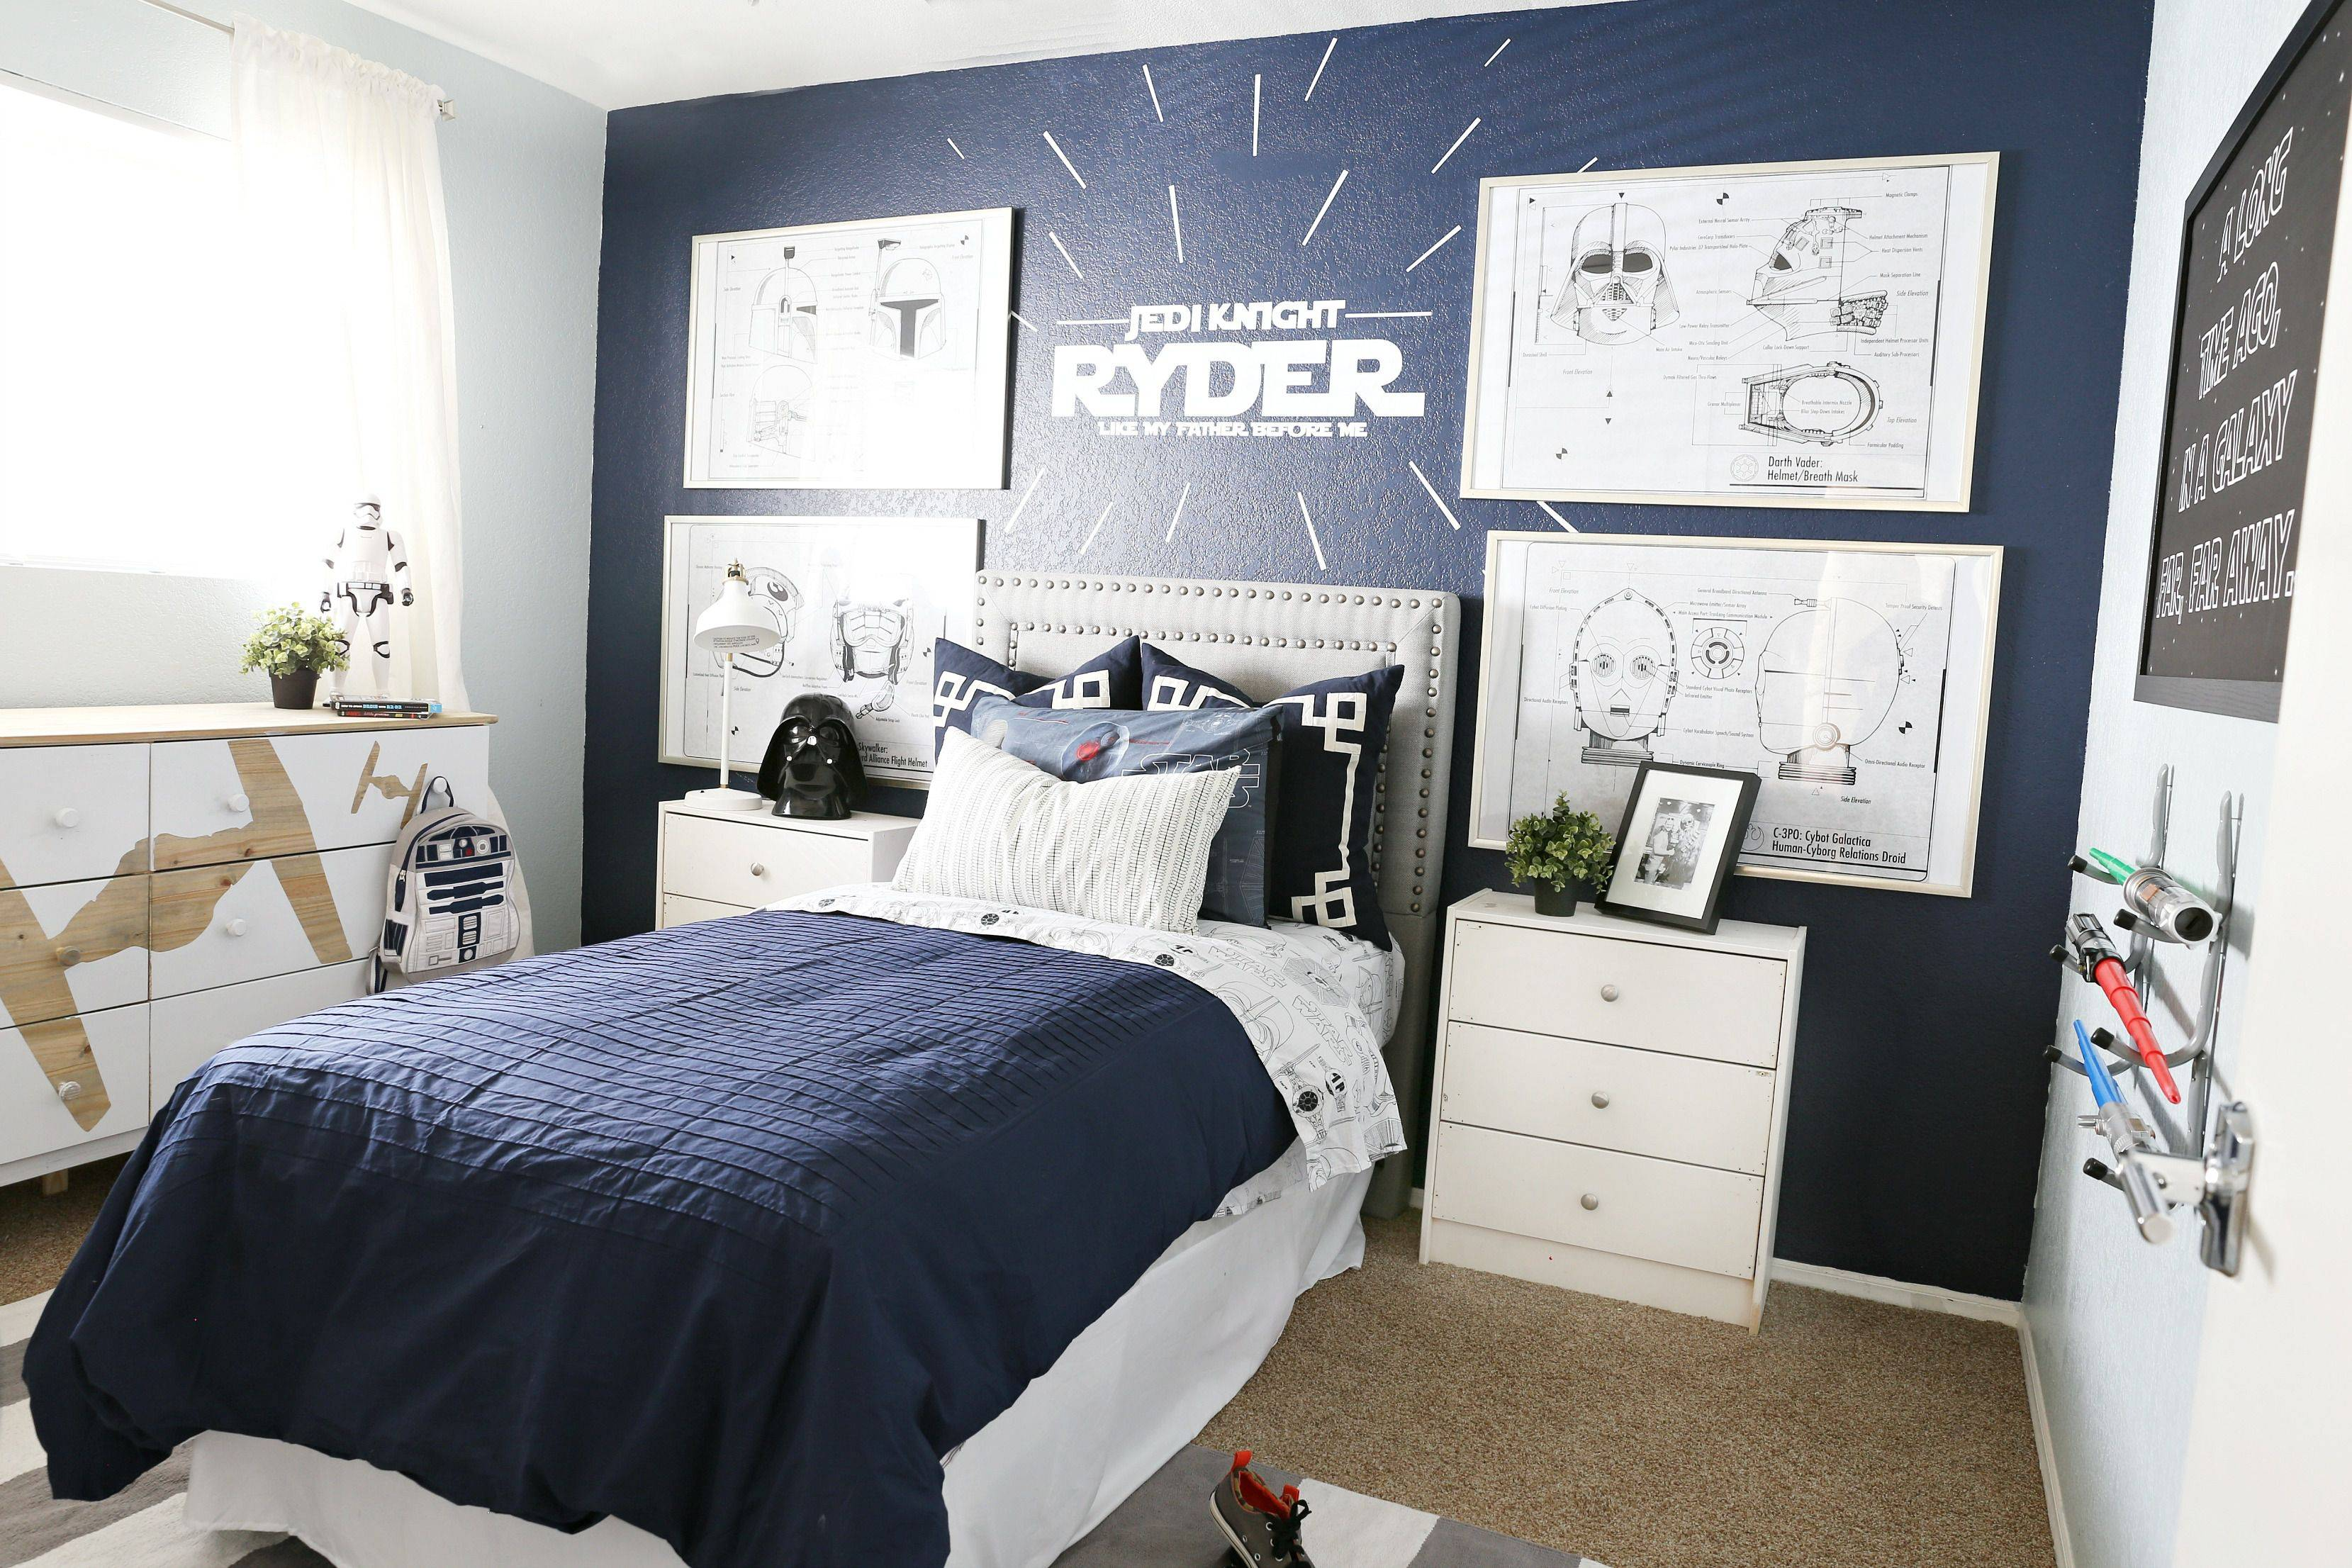 StarWarsBedroom 5904e9ac5f9b5810dca41a3a